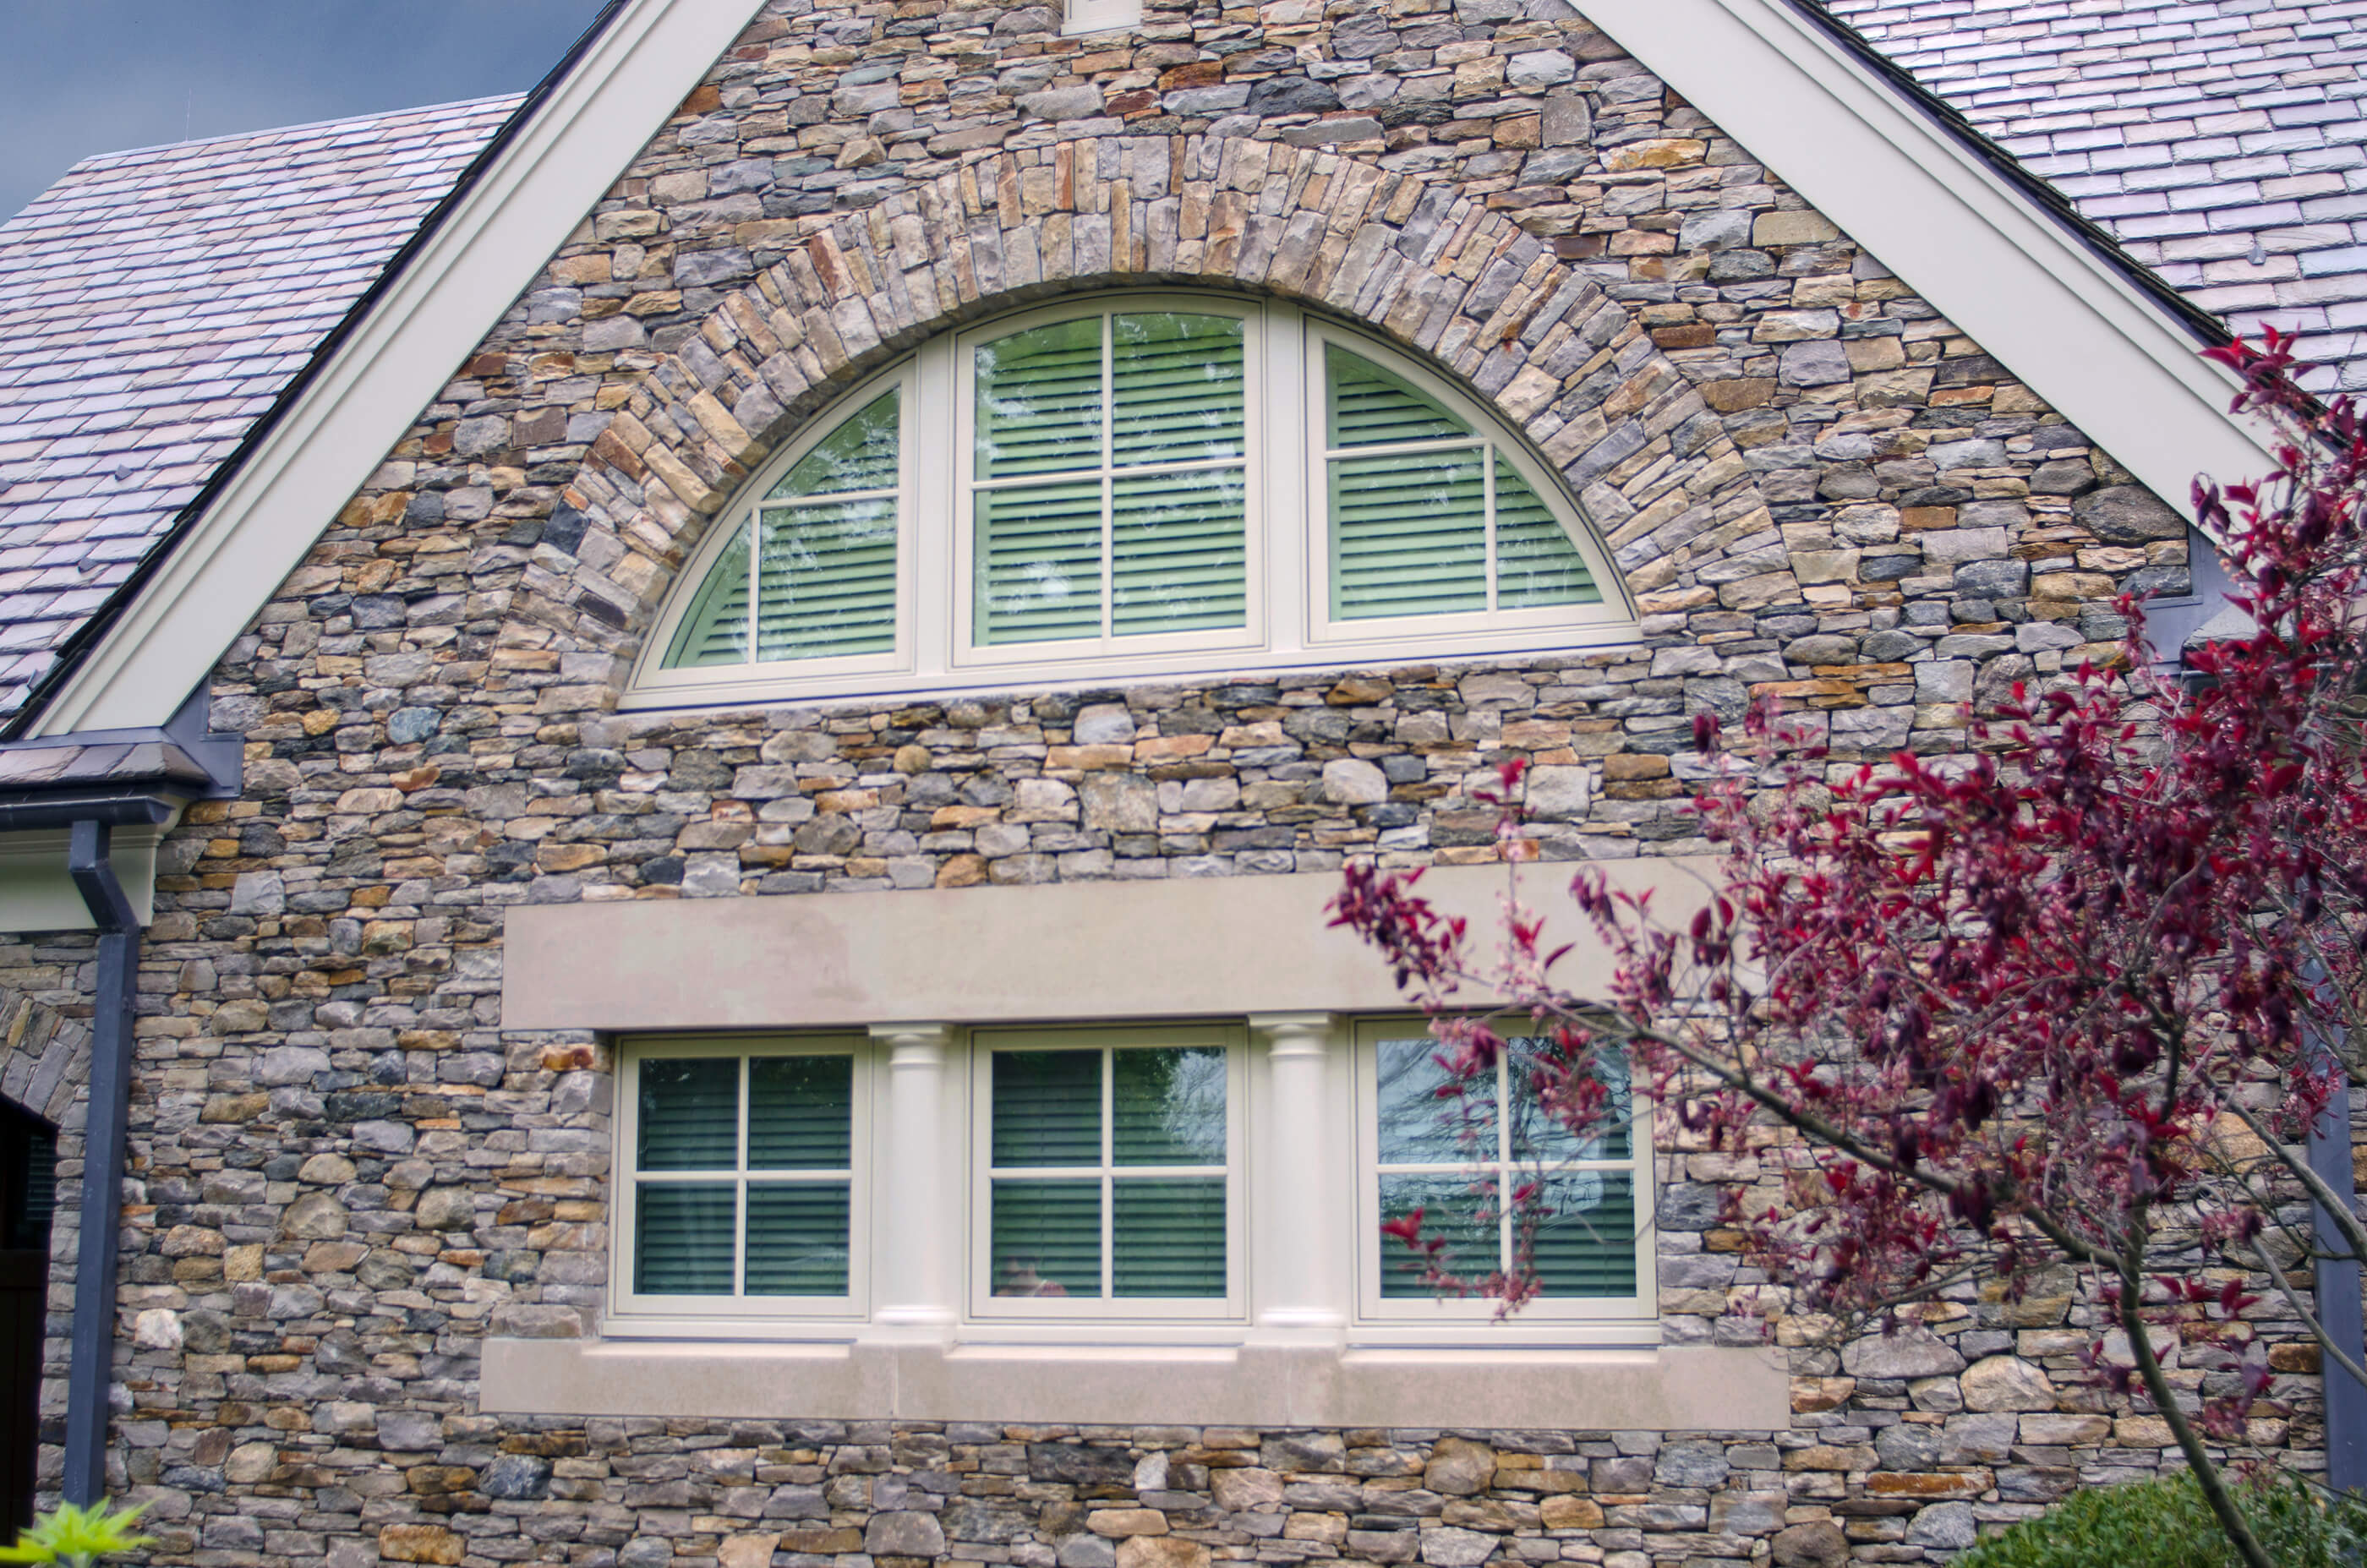 Photo of a seaside home with Kolbe Windows